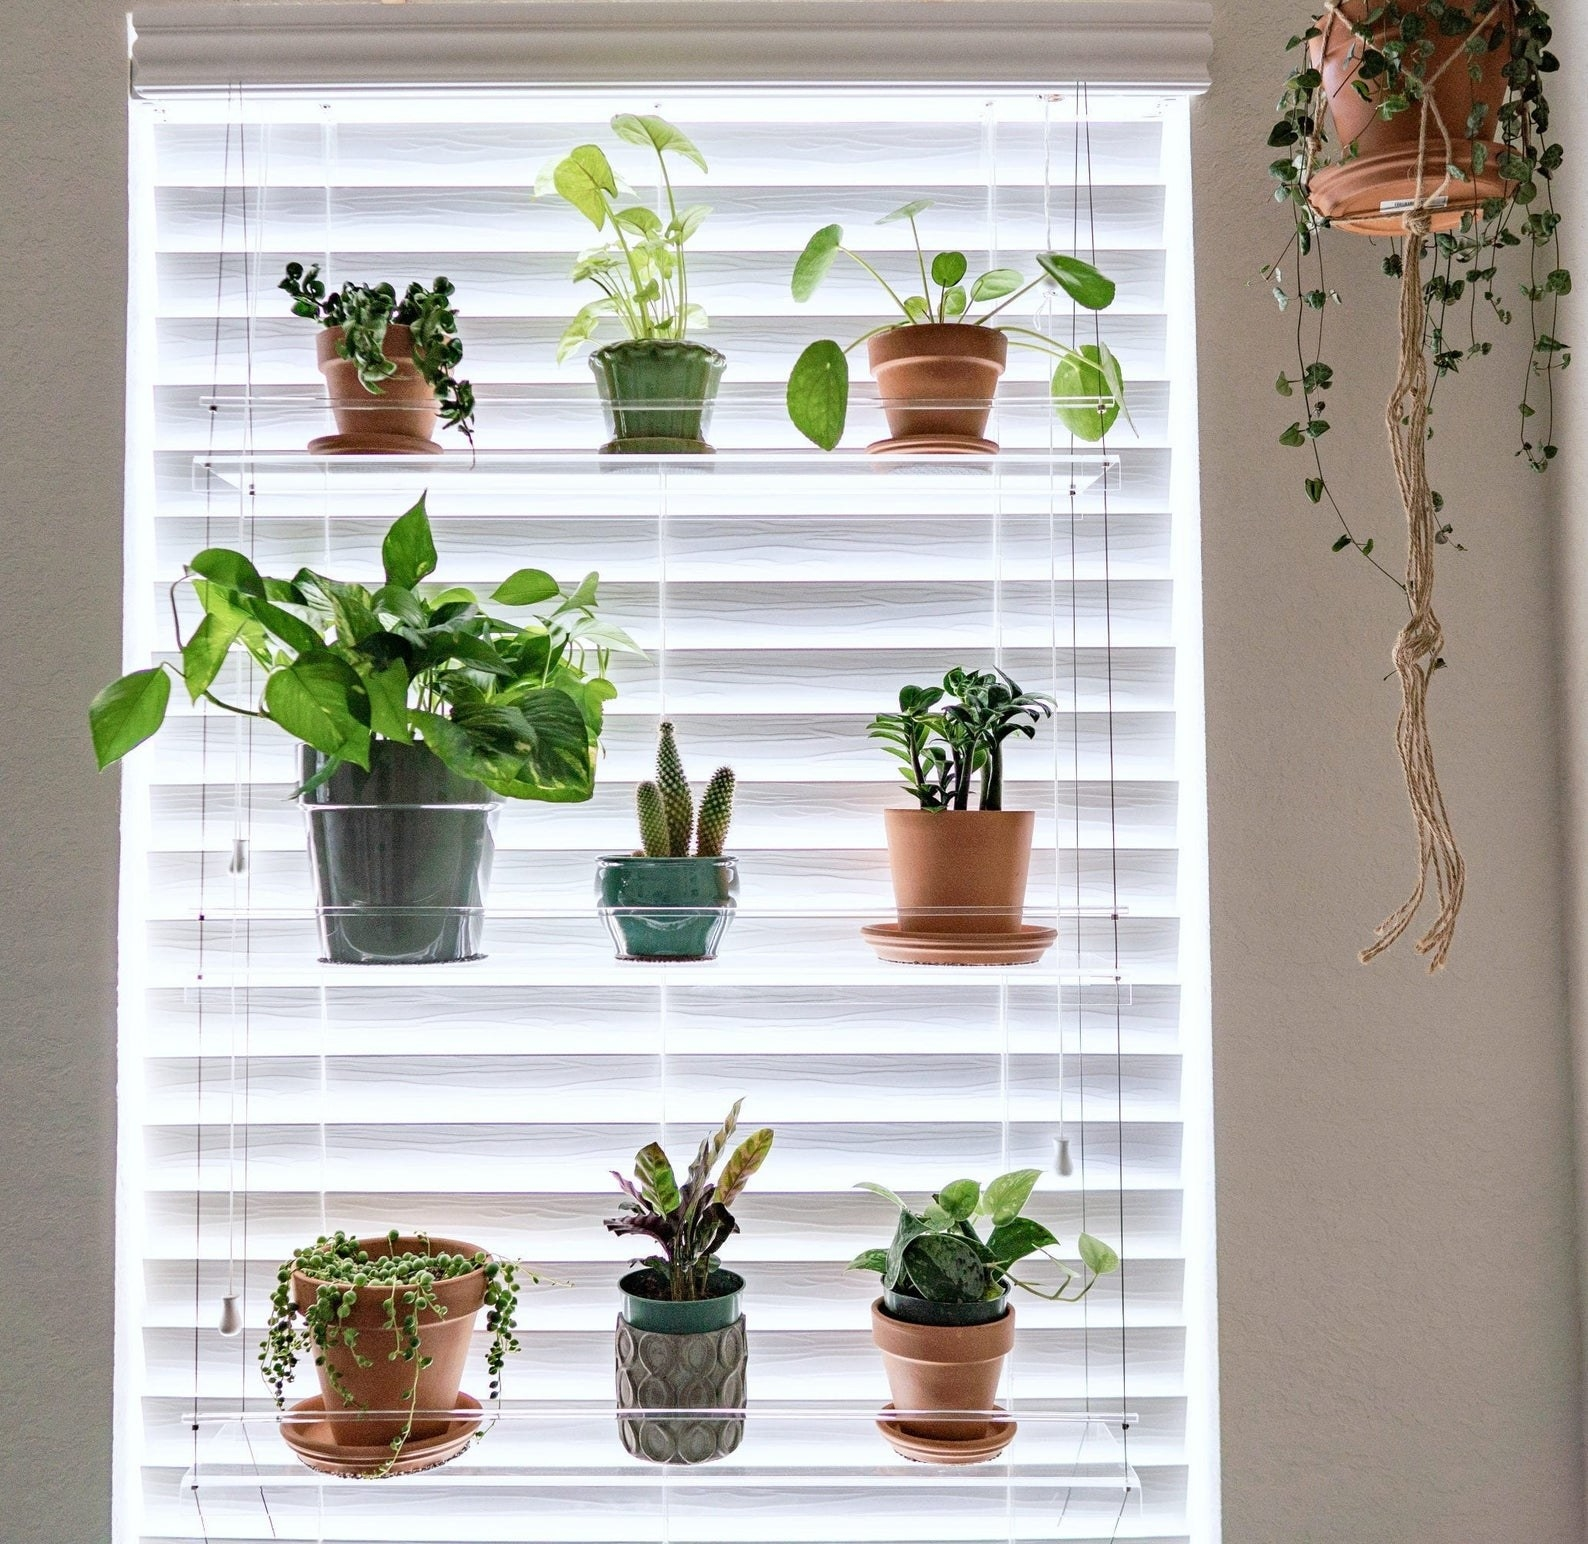 The three-tiered shelf holding nine plants